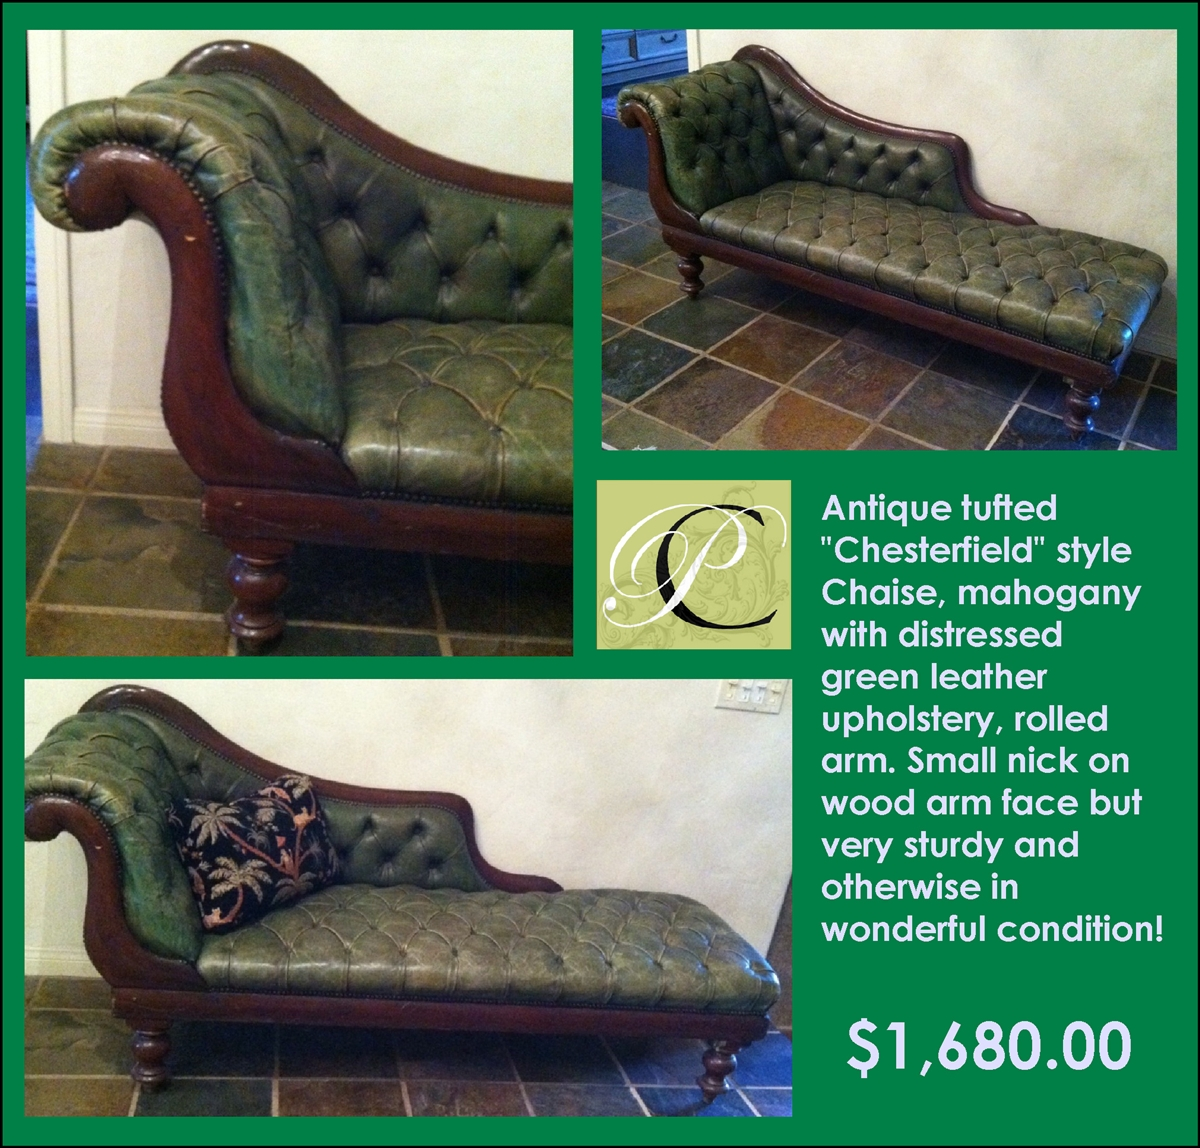 Cool Antique Chaise Mahogany Chesterfield Green Leather Gmtry Best Dining Table And Chair Ideas Images Gmtryco